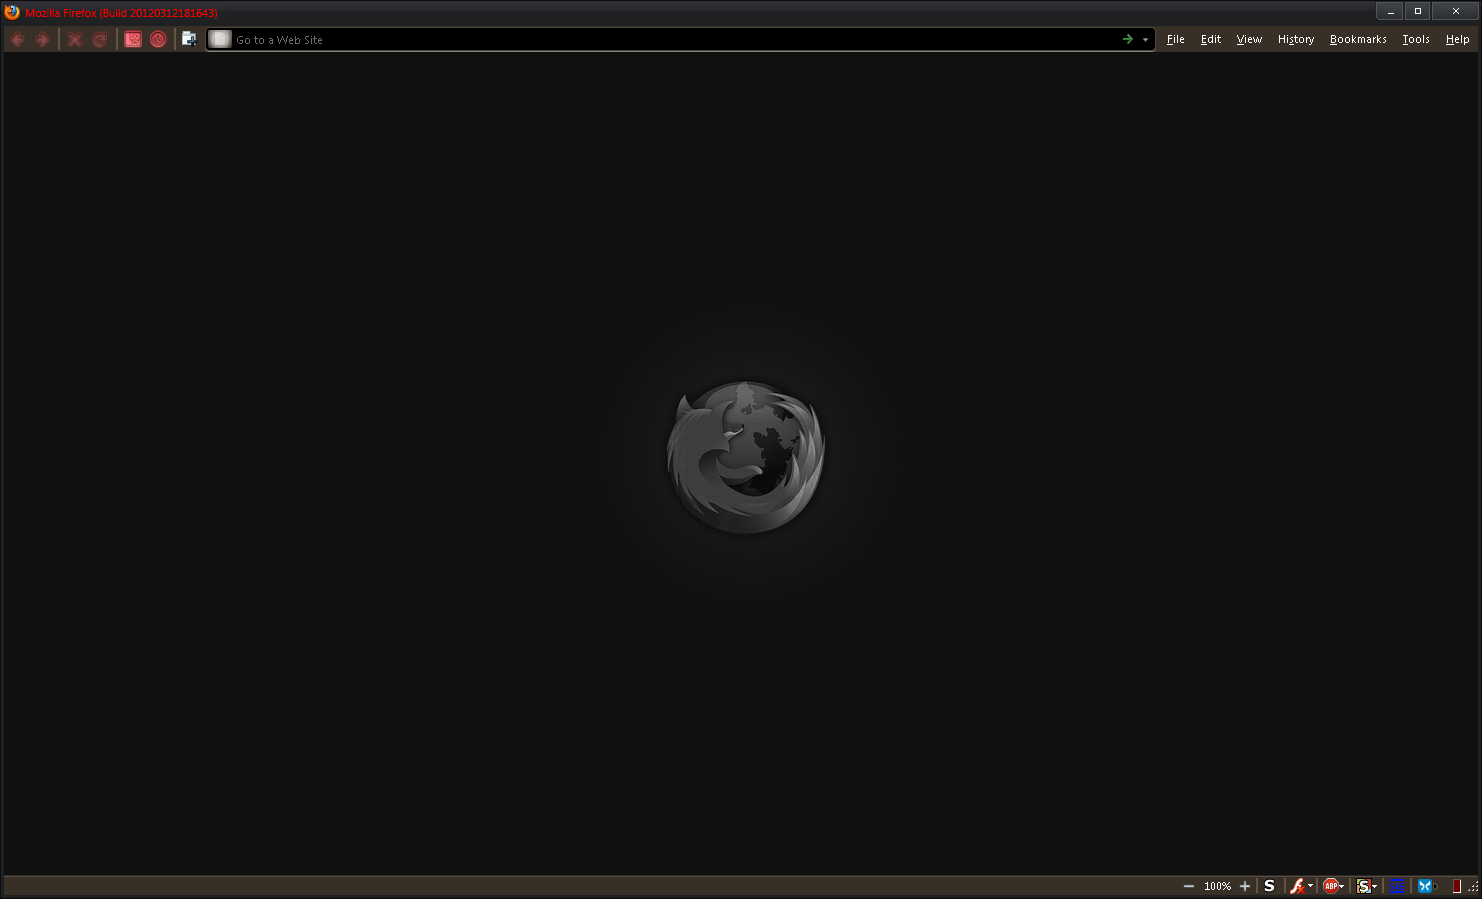 Latest Firefox - Fx 11 minimalistic pimped by t3odor on